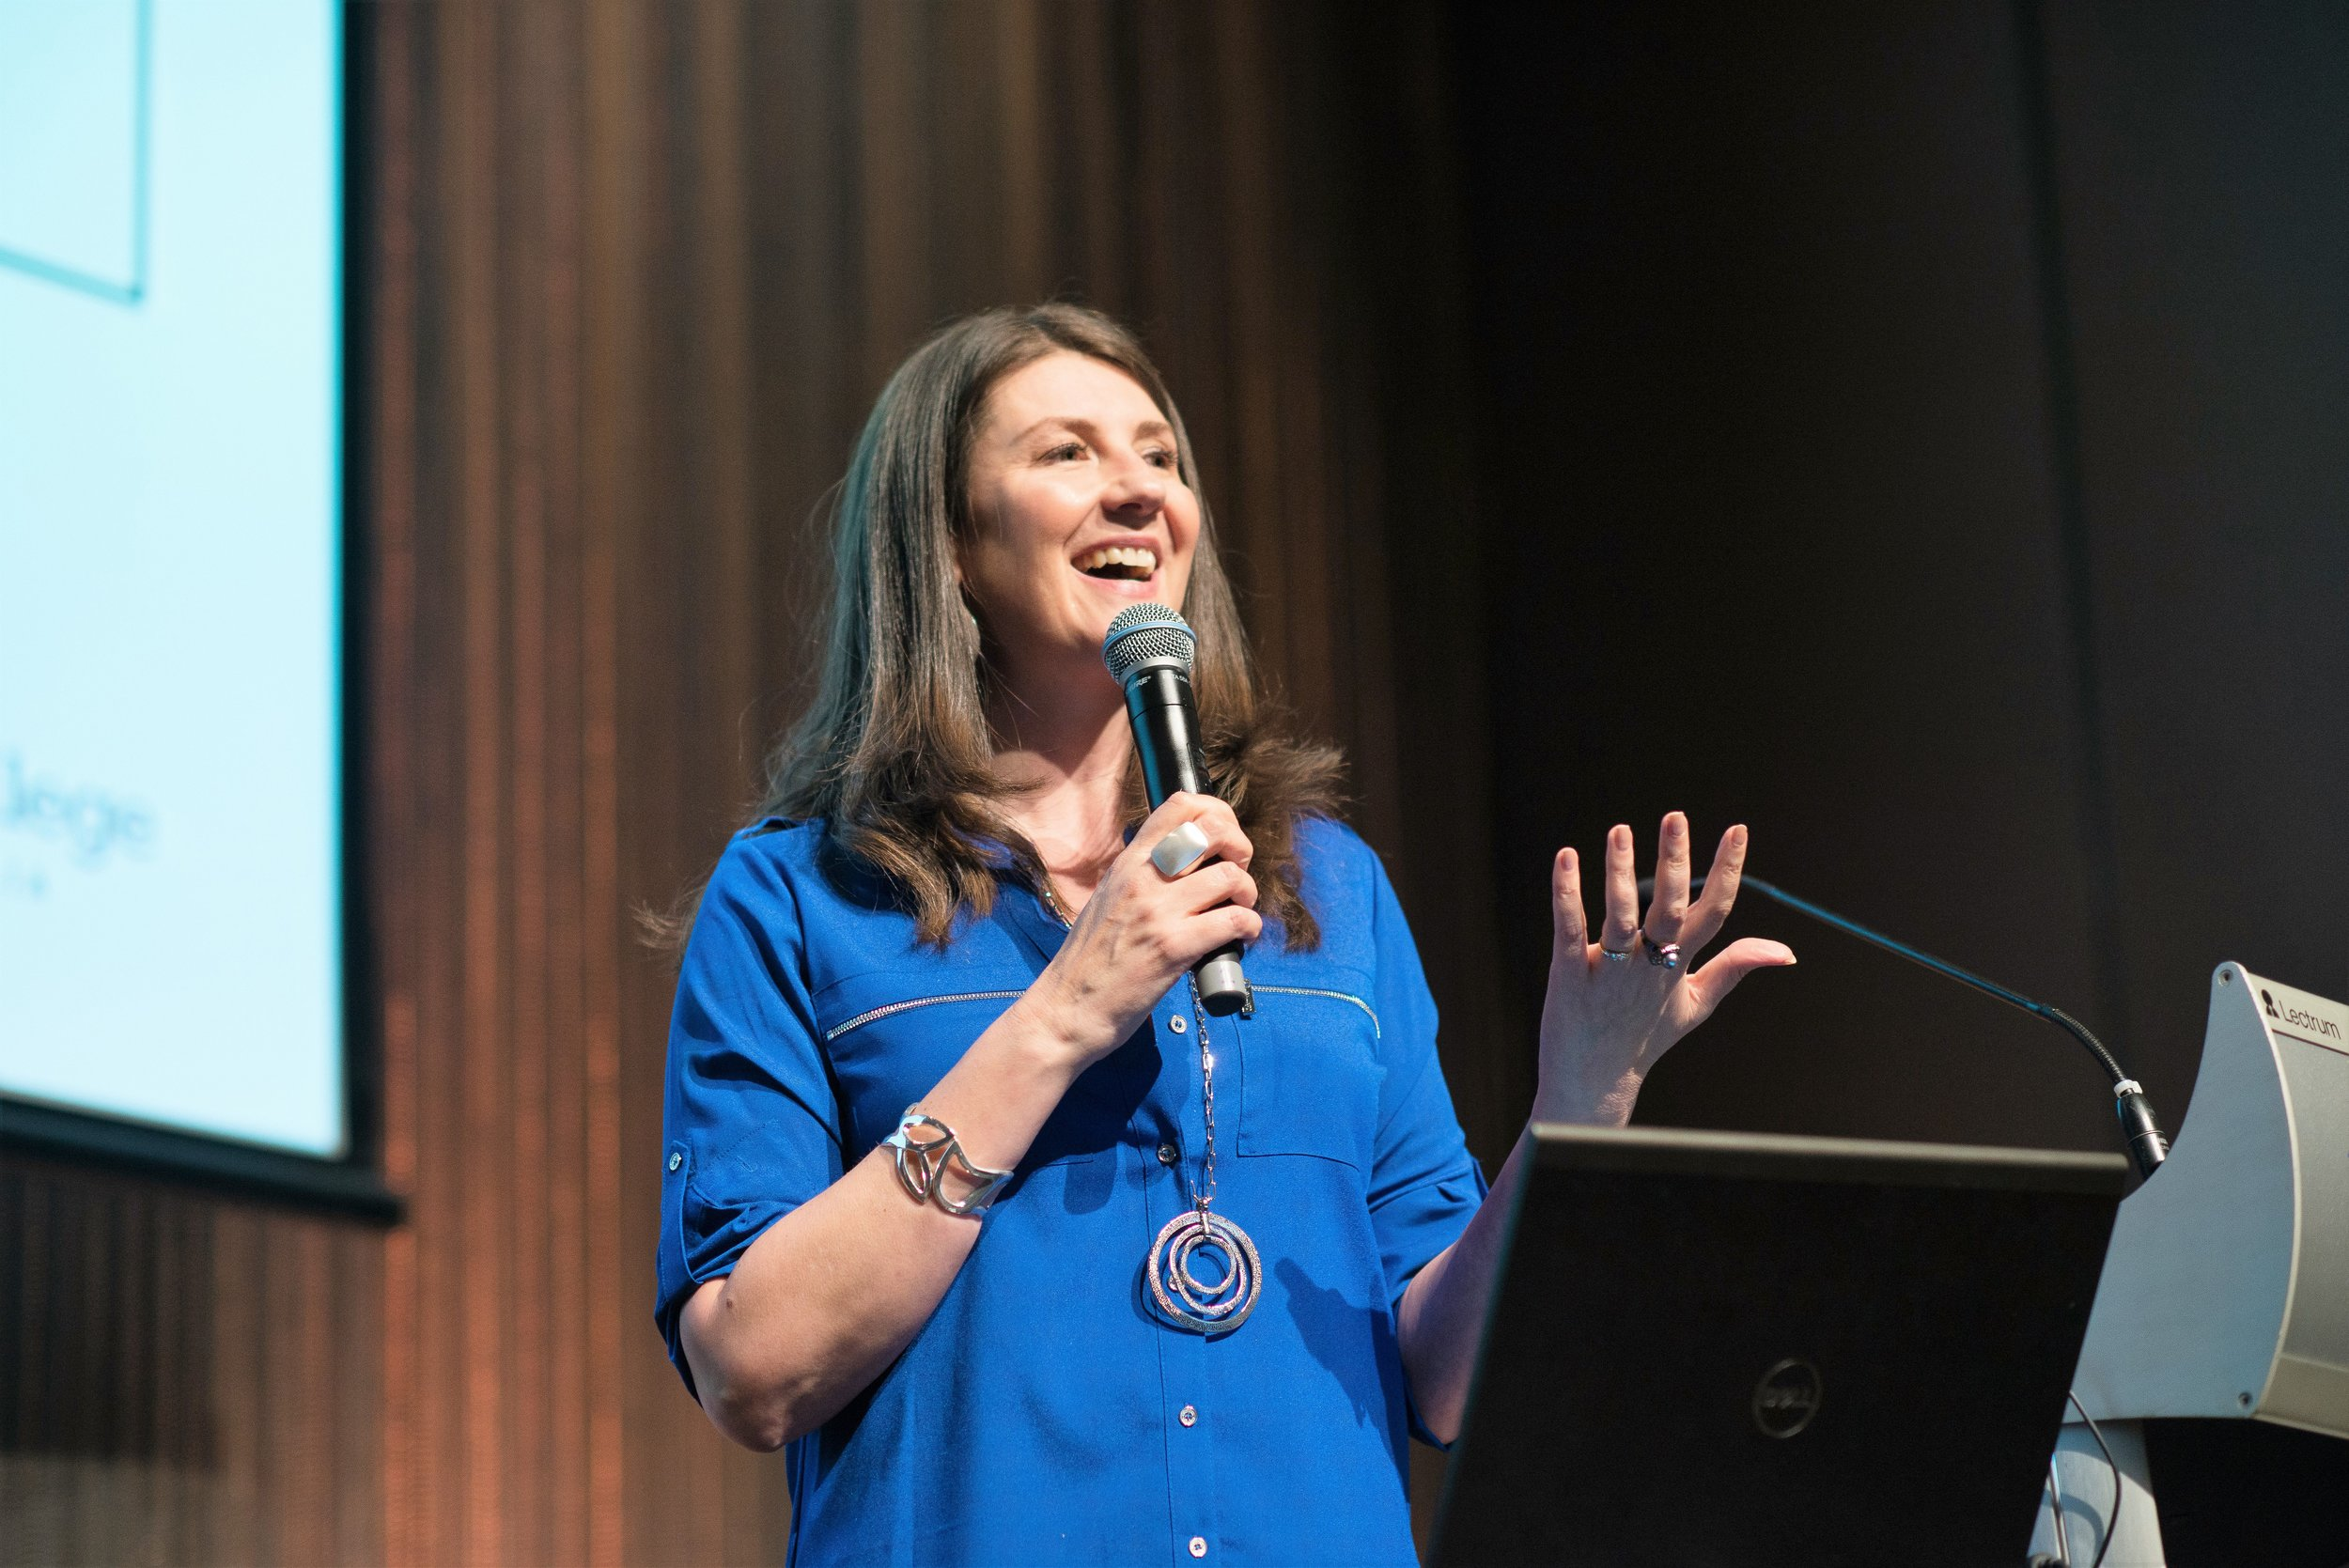 Speaker, author and researcher Lea Waters, PhD